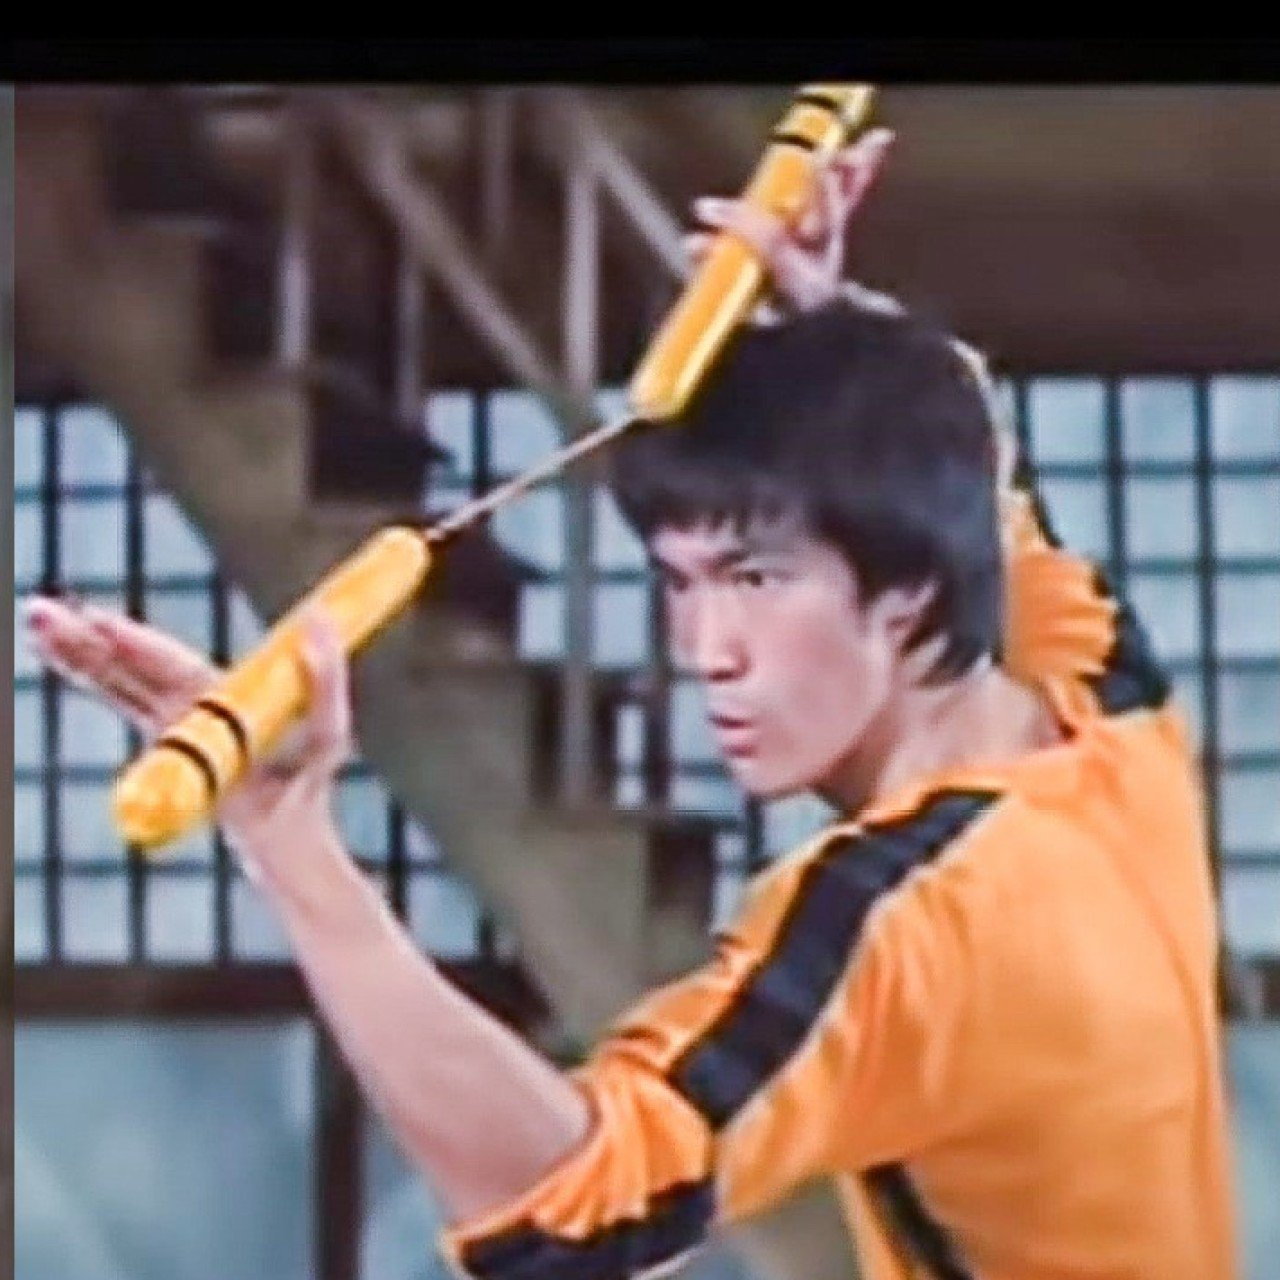 Me and my uncle Ip Man taught Bruce Lee Wing Chun kung fu  He was